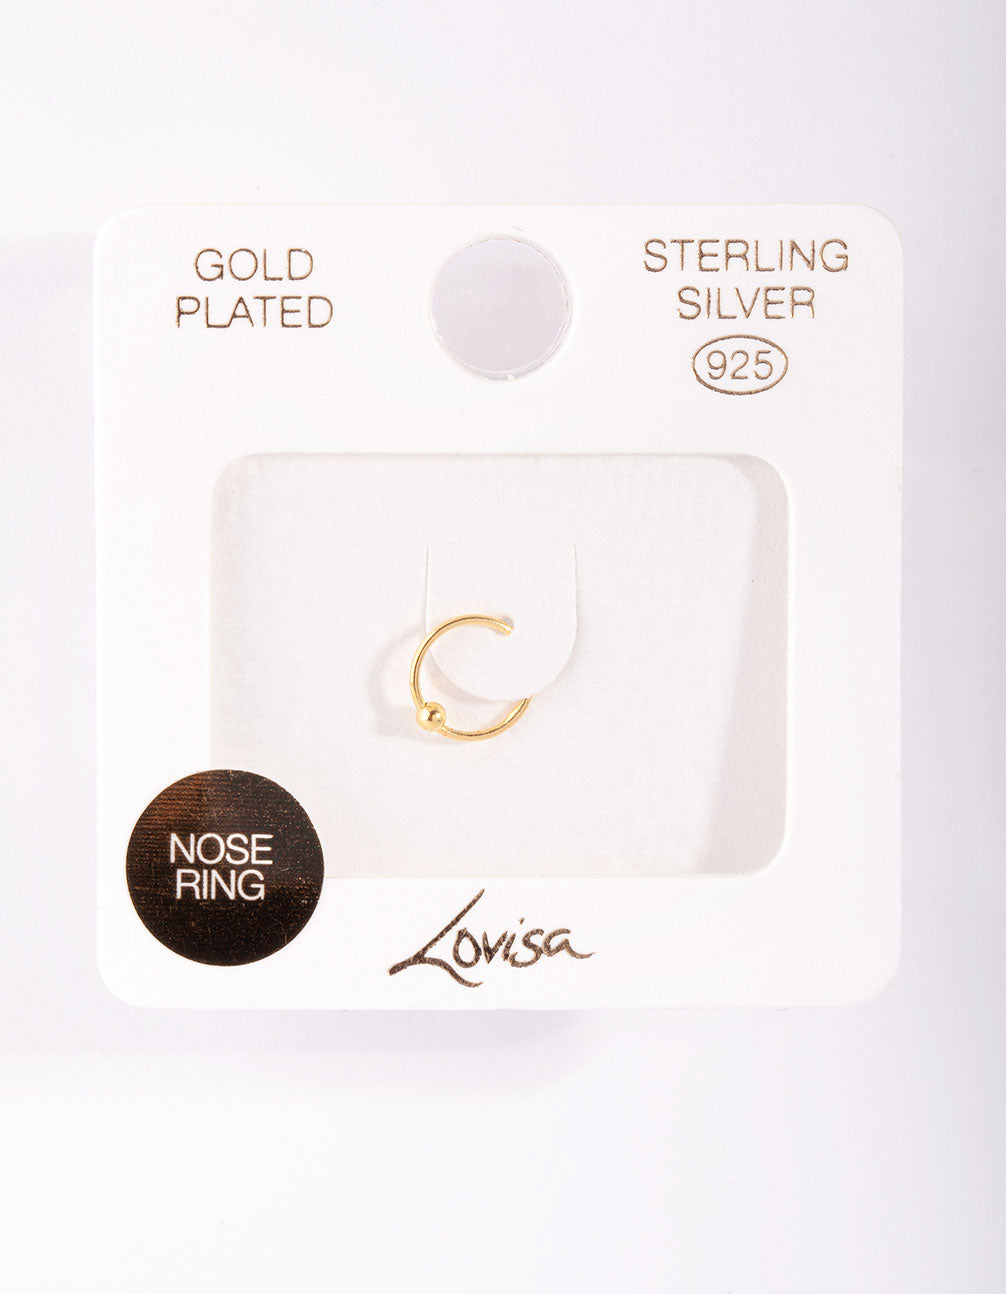 Gold Plated Sterling Silver Mini Nose Ring